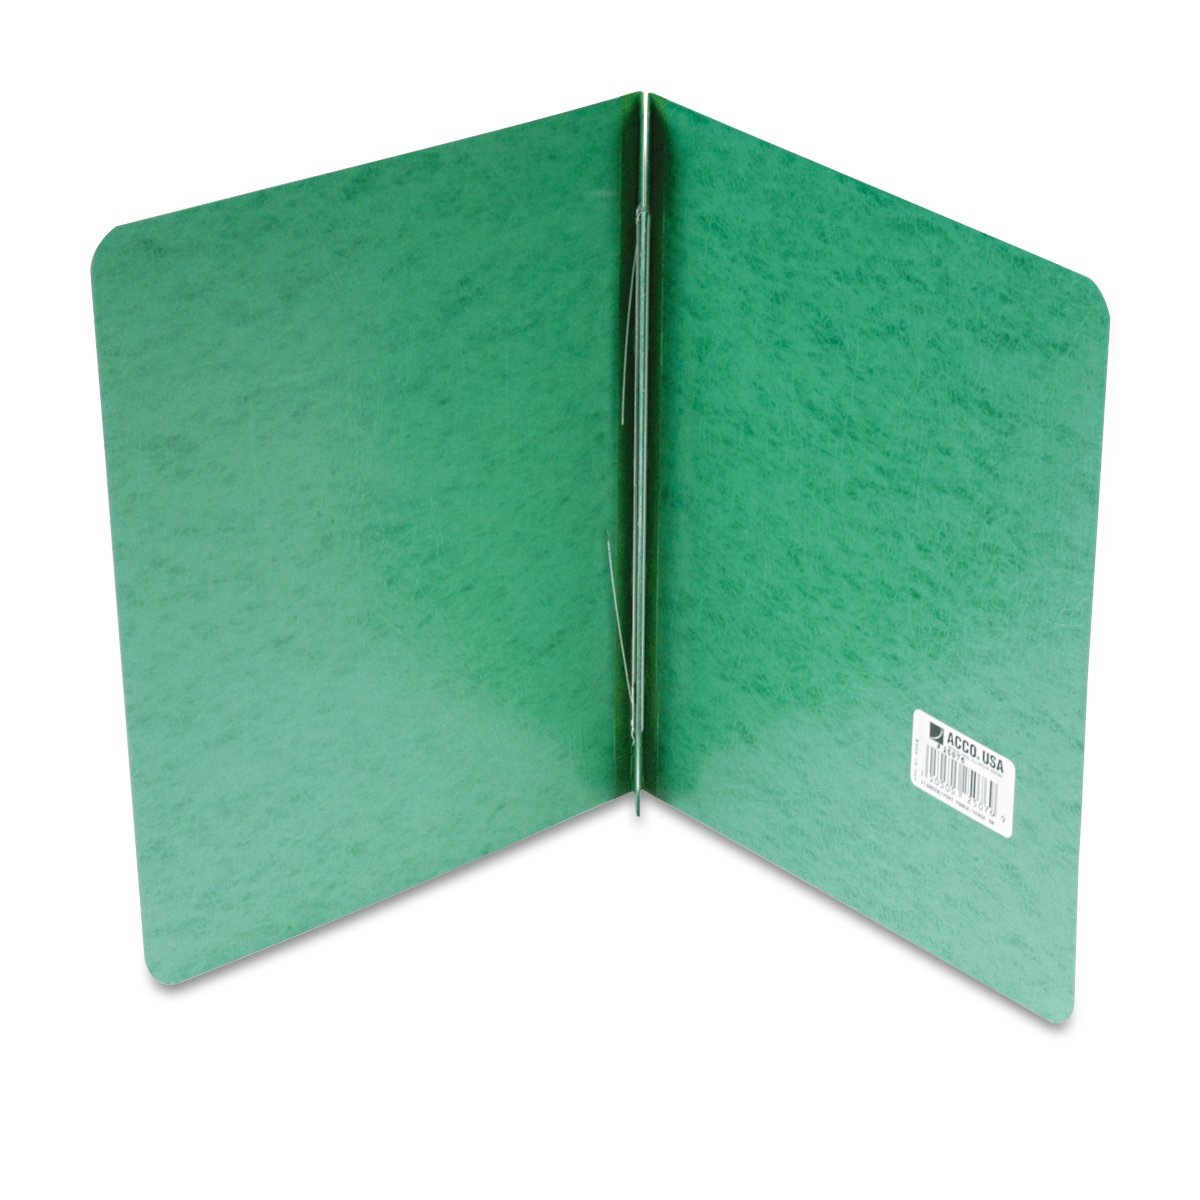 ACCO PRESSTEX Report Cover, Side Bound, Tyvek Reinforced Hinge, 8.5 Inch Centers, 3 Inch Capacity, Letter Size, Dark Green (A7025076A) ACCO Brands